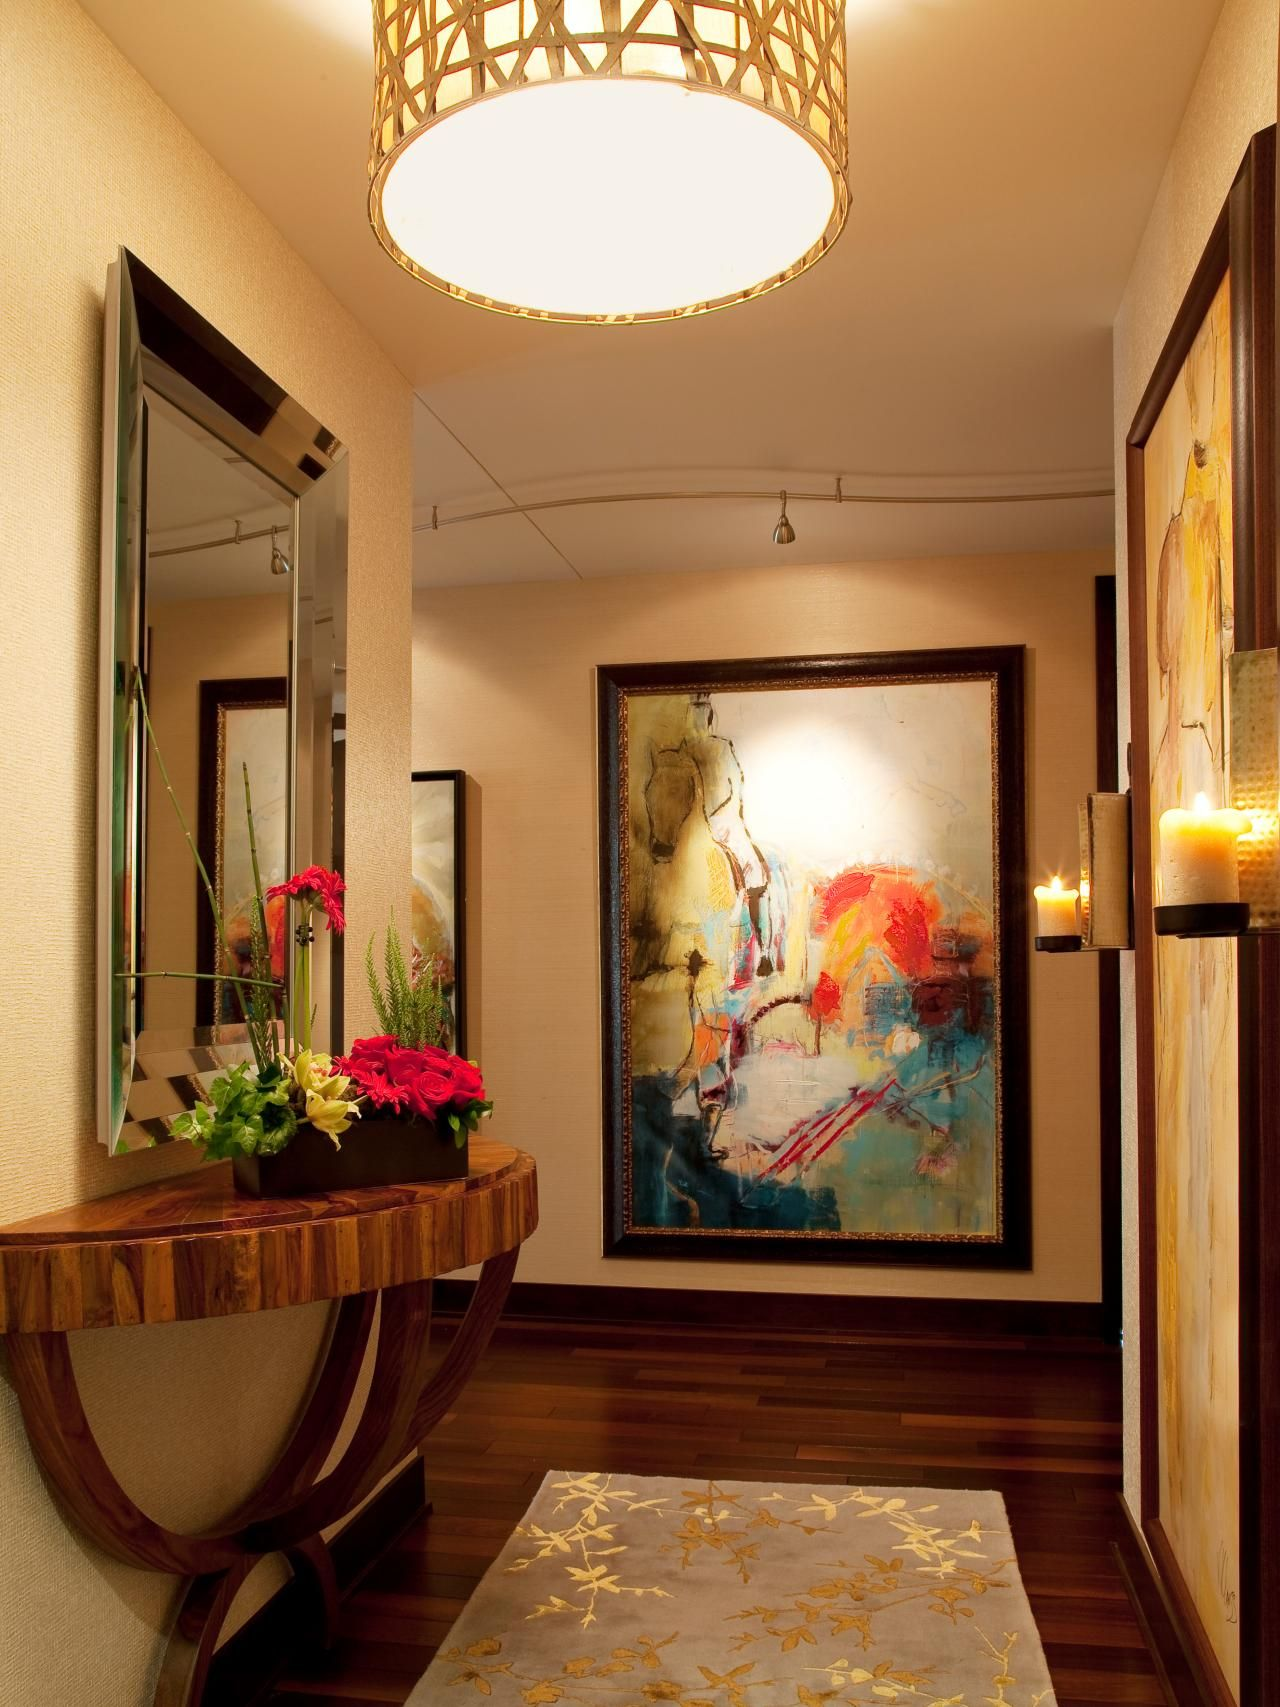 track lighting for art. DIY Network Offer Advice On Properly Lighting Artwork, Including Outlining The Style And Type Of Light That\u0027s Best For Different Types Art. Track Art